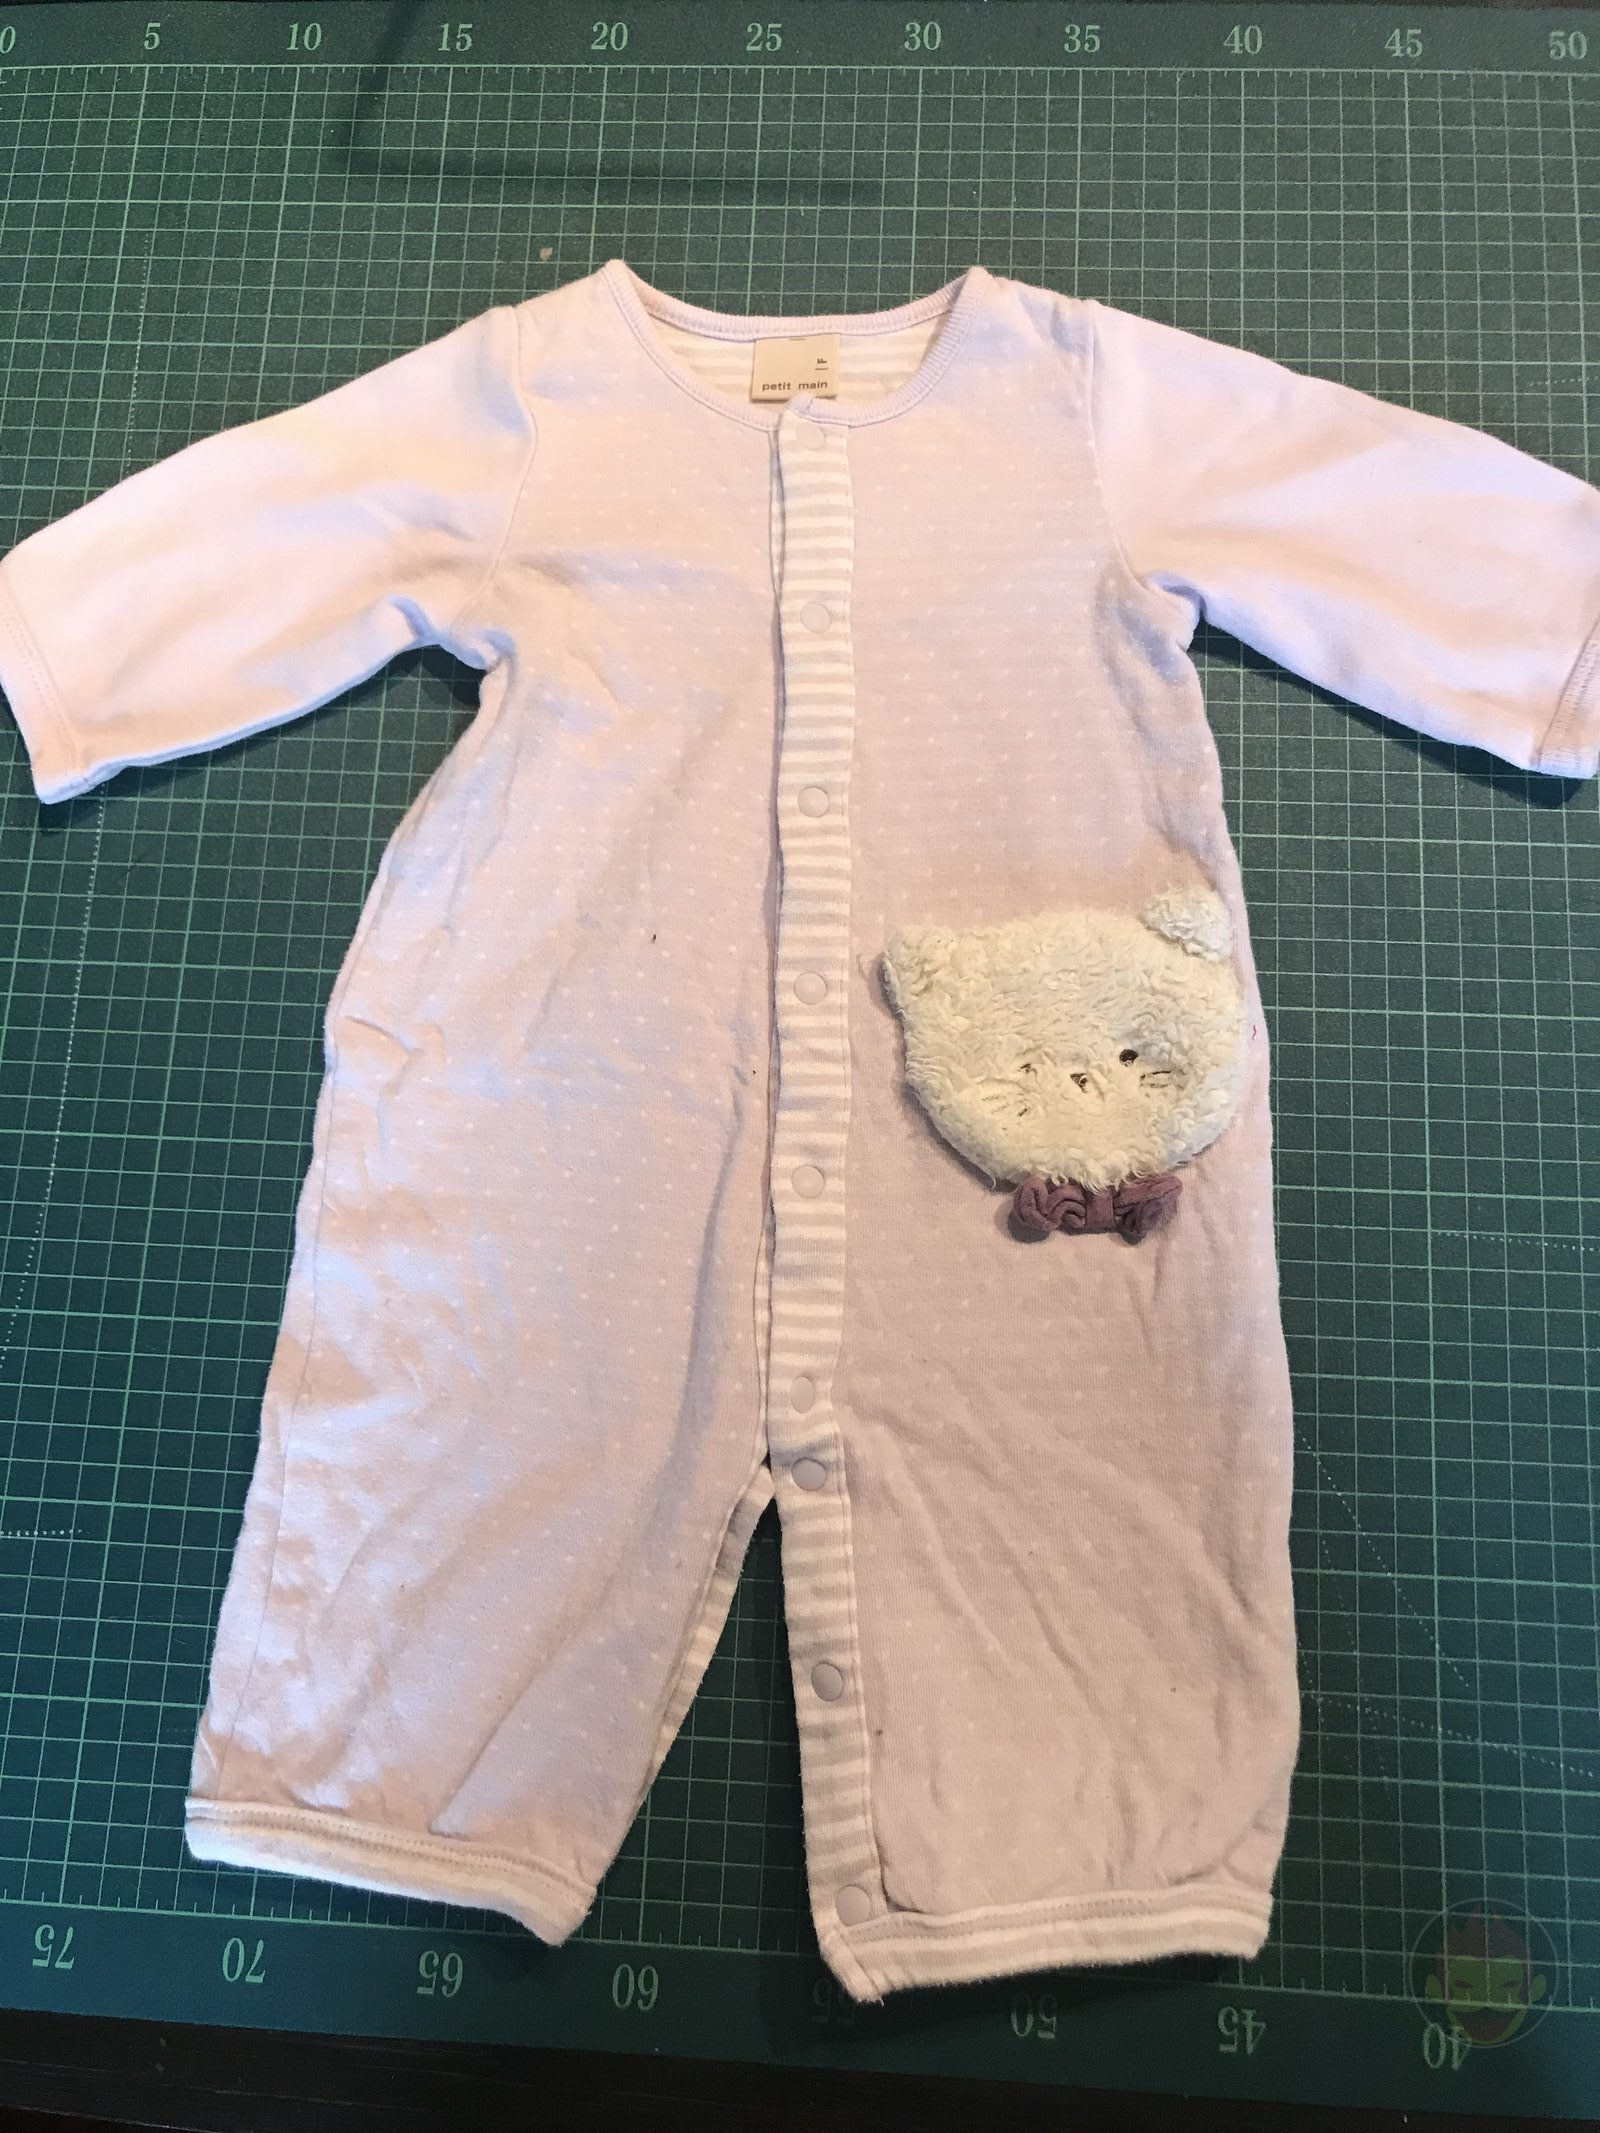 Baby Clothes remade into new items 18